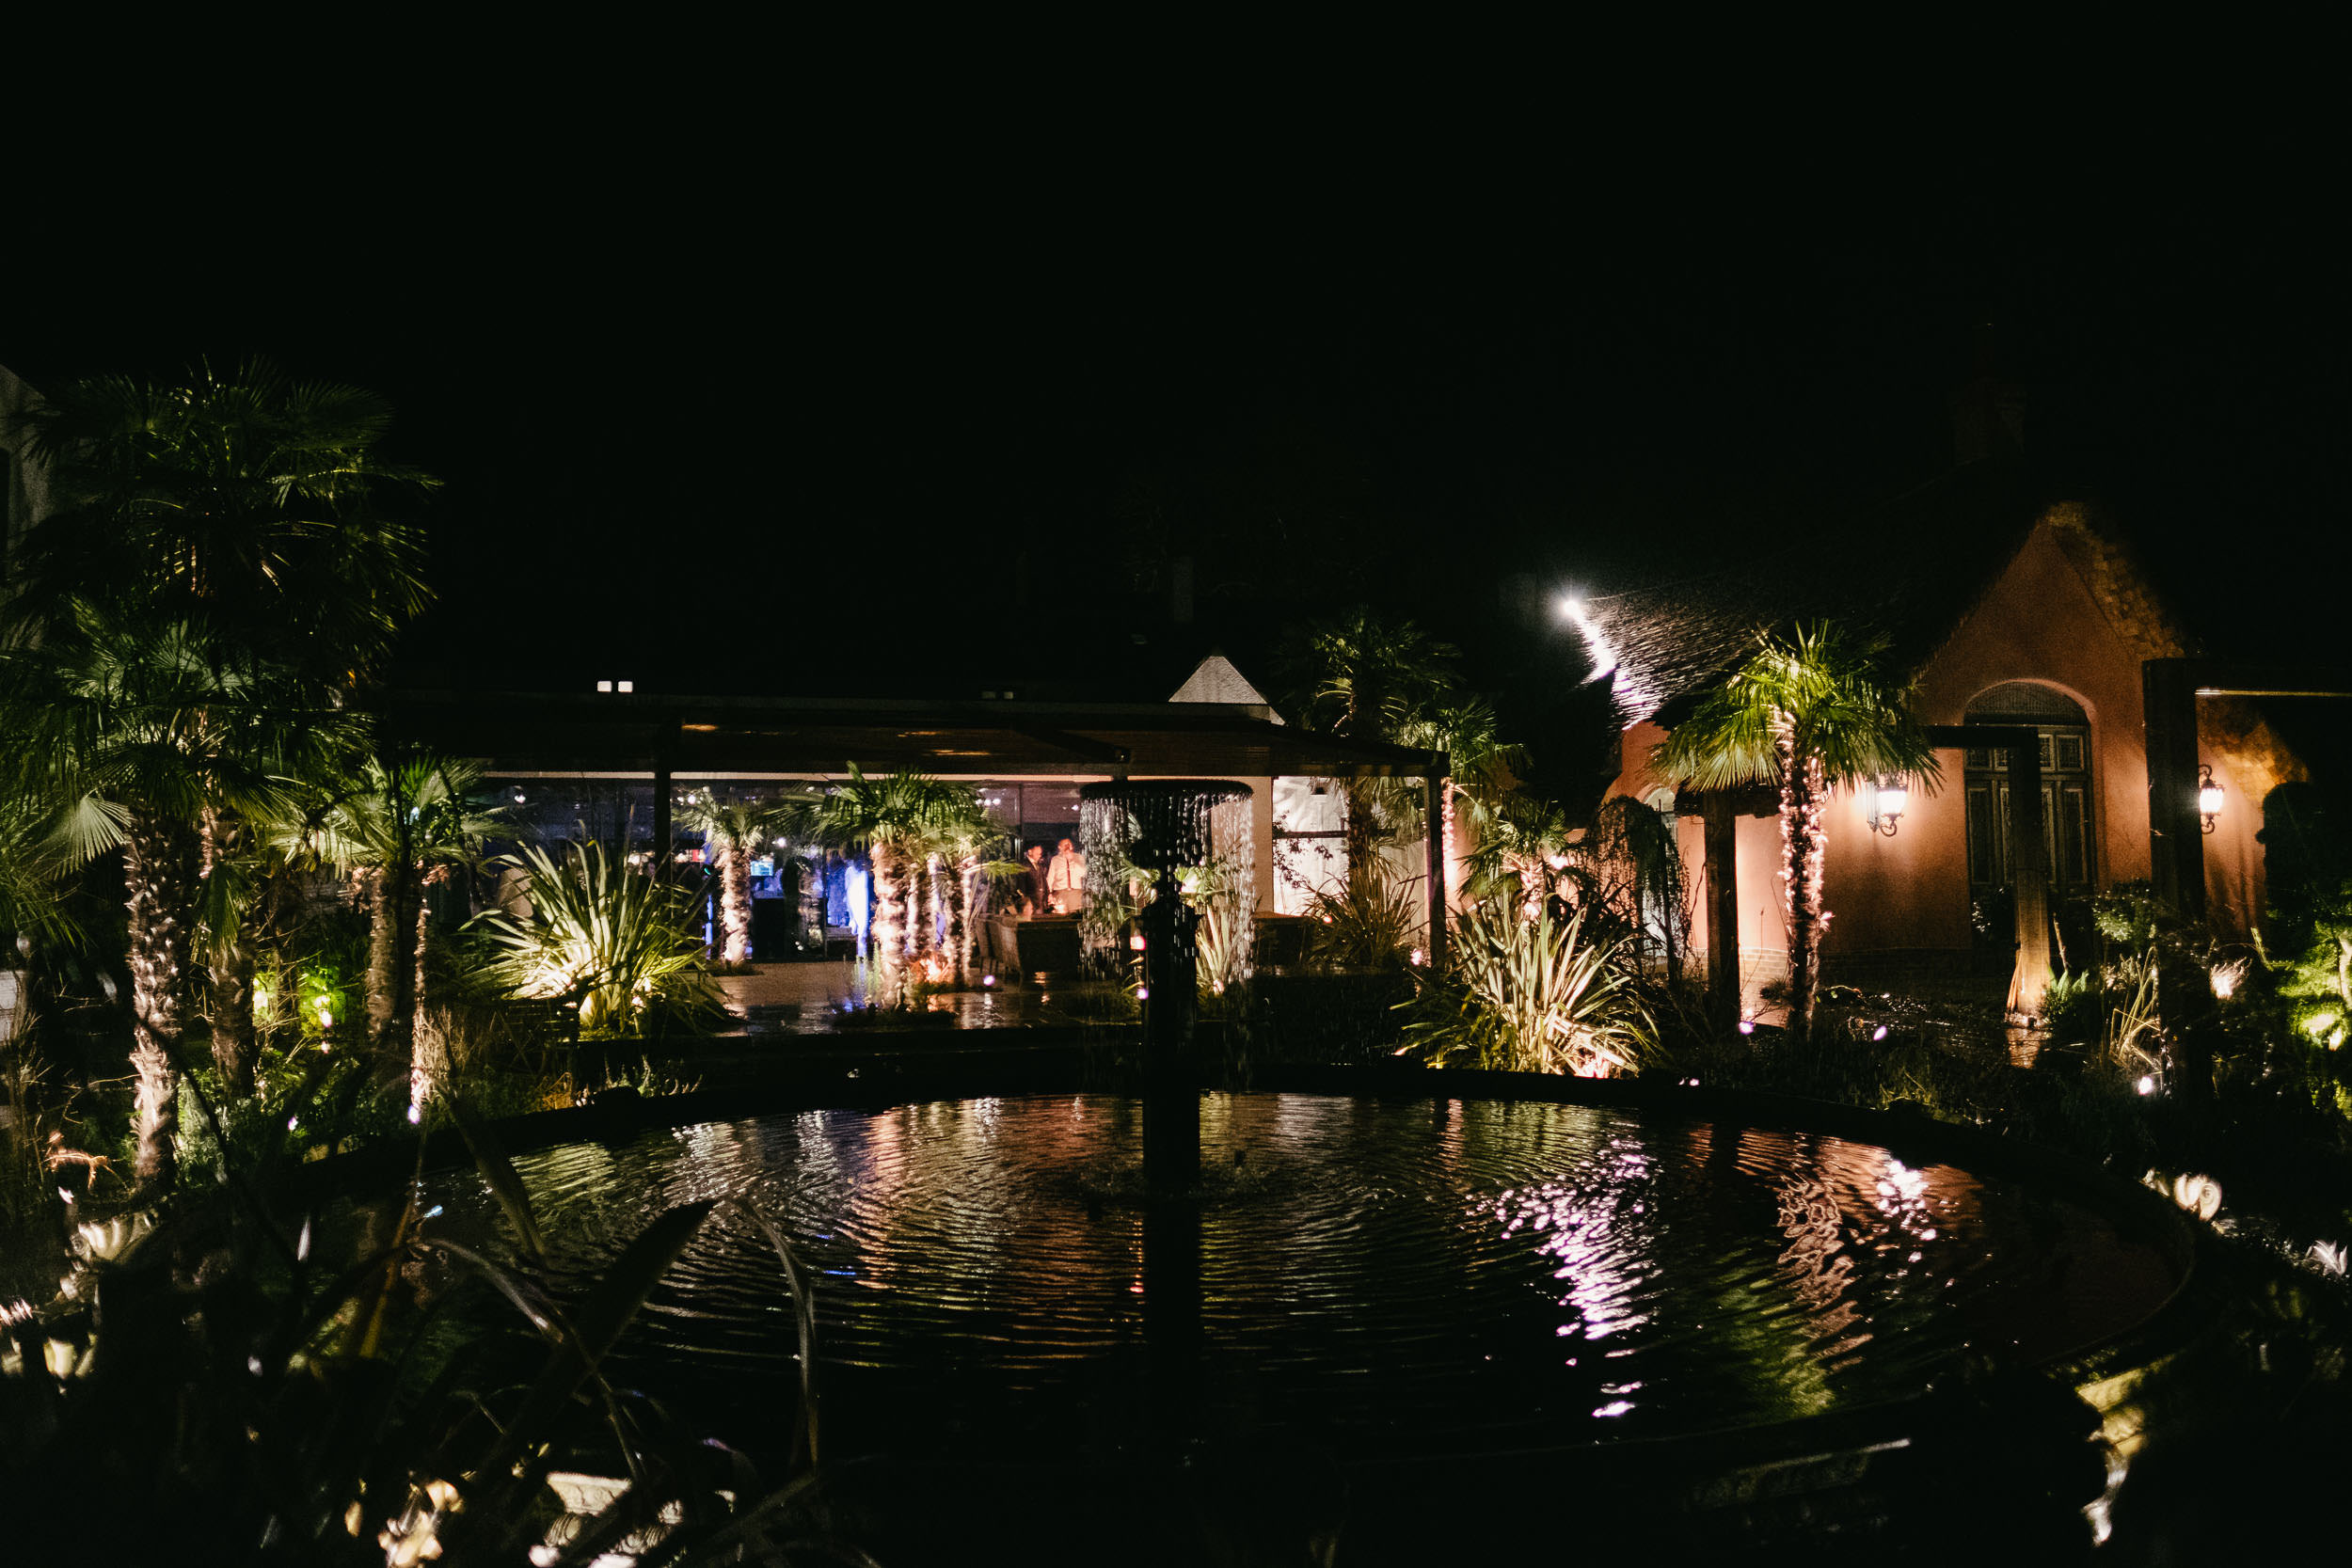 The gardens are lit up at night